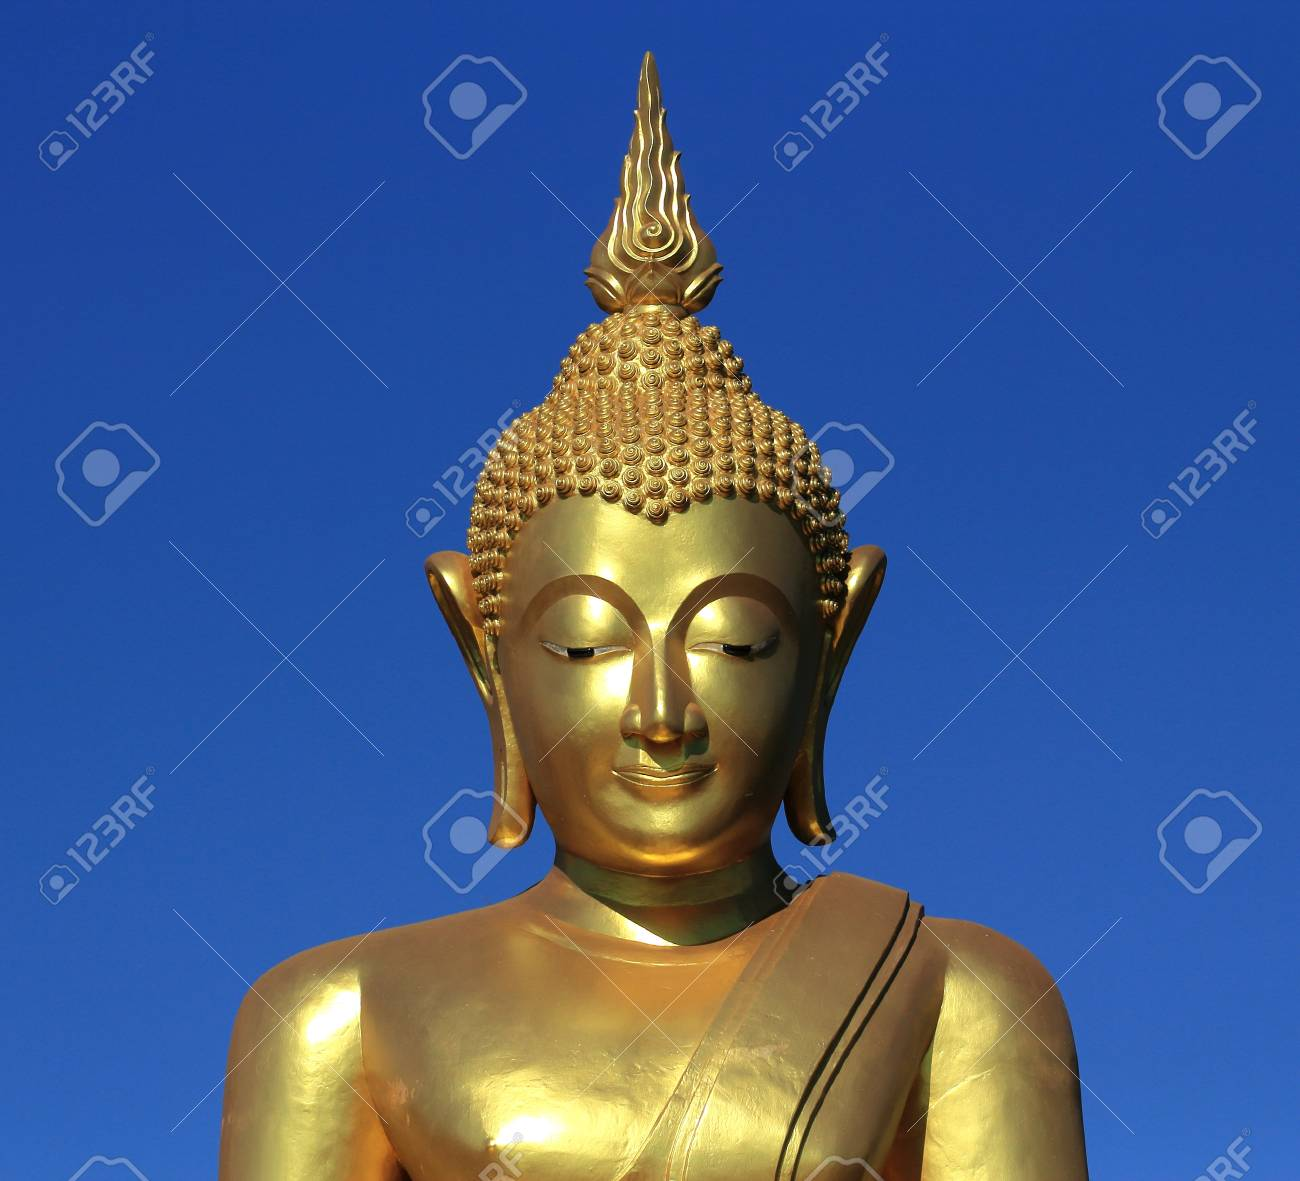 Buddha statues in Thailand Stock Photo - 11868956